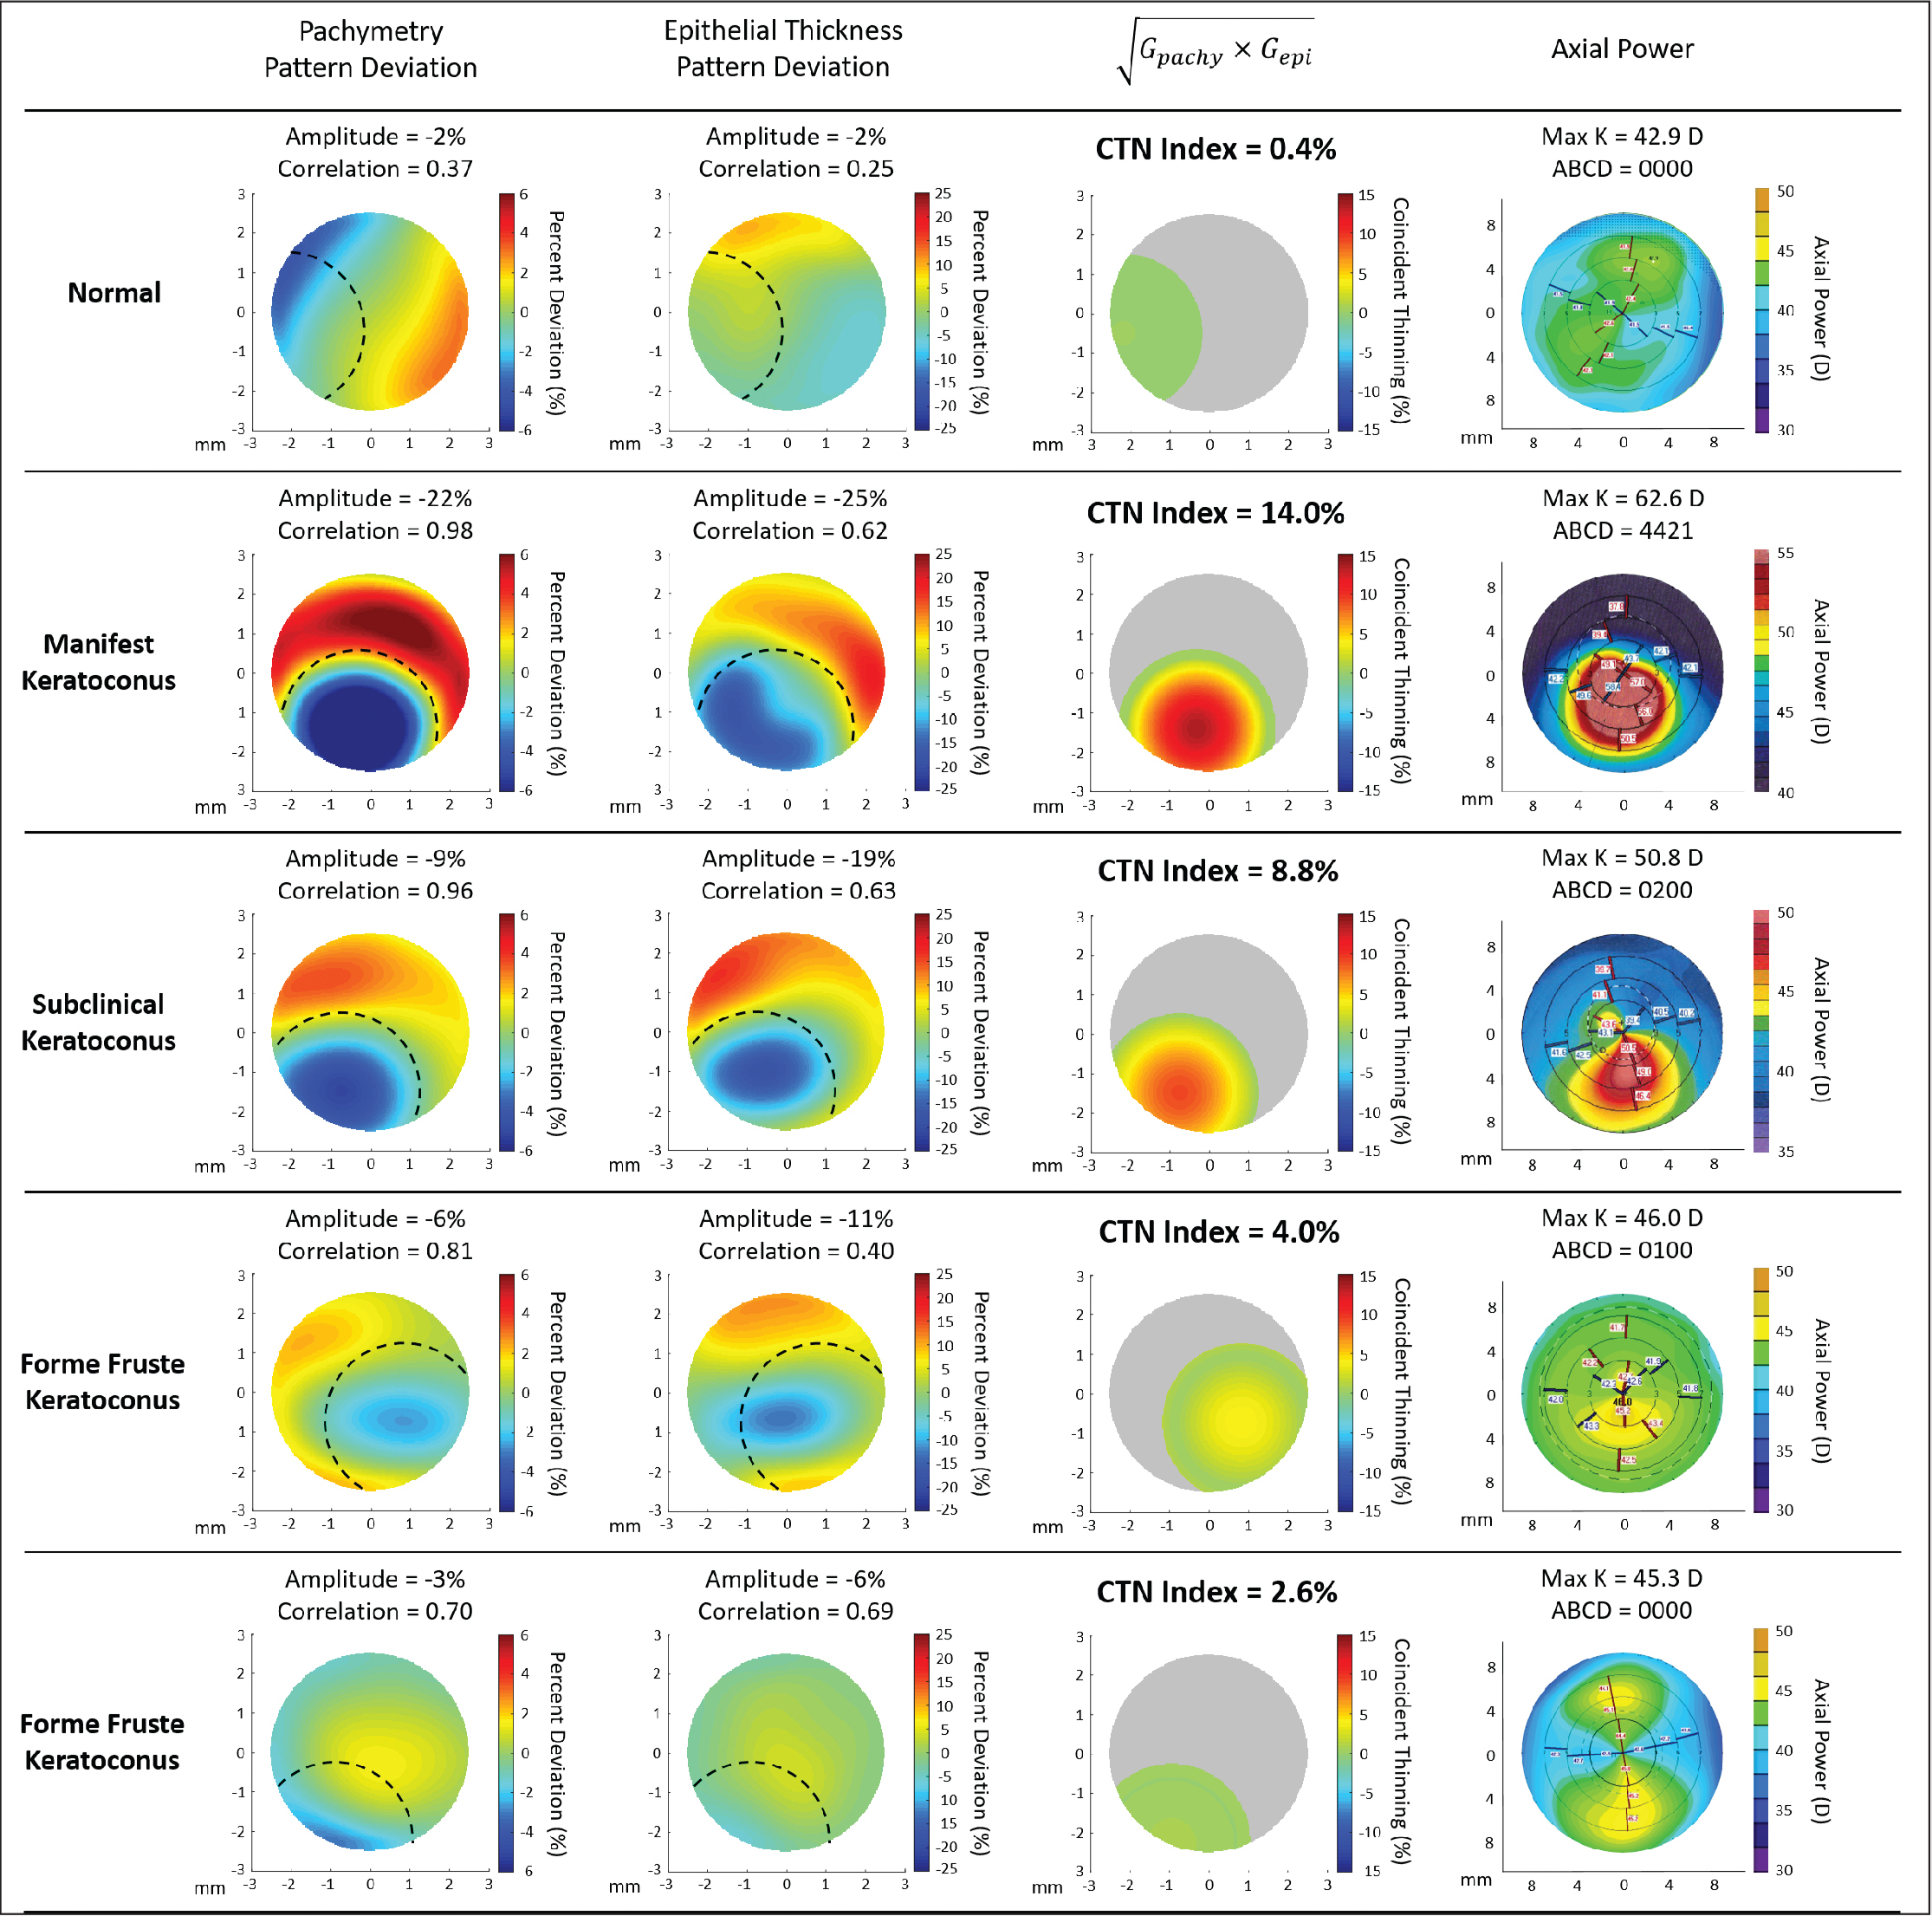 Pattern deviation, coincident thinning (CTN), and Pentacam (Oculus Optikgeräte GmbH) axial power maps for representative eyes from each group. Eyes in the keratoconus groups were generally found to have a higher amplitude and correlation from Gaussian fitting compared to normal eyes (dashed line = Gaussian fit region). Gpachy = pachymetry Gaussian fit; Gepi = epithelial thickness Gaussian fit; D = diopters; K = keratometry